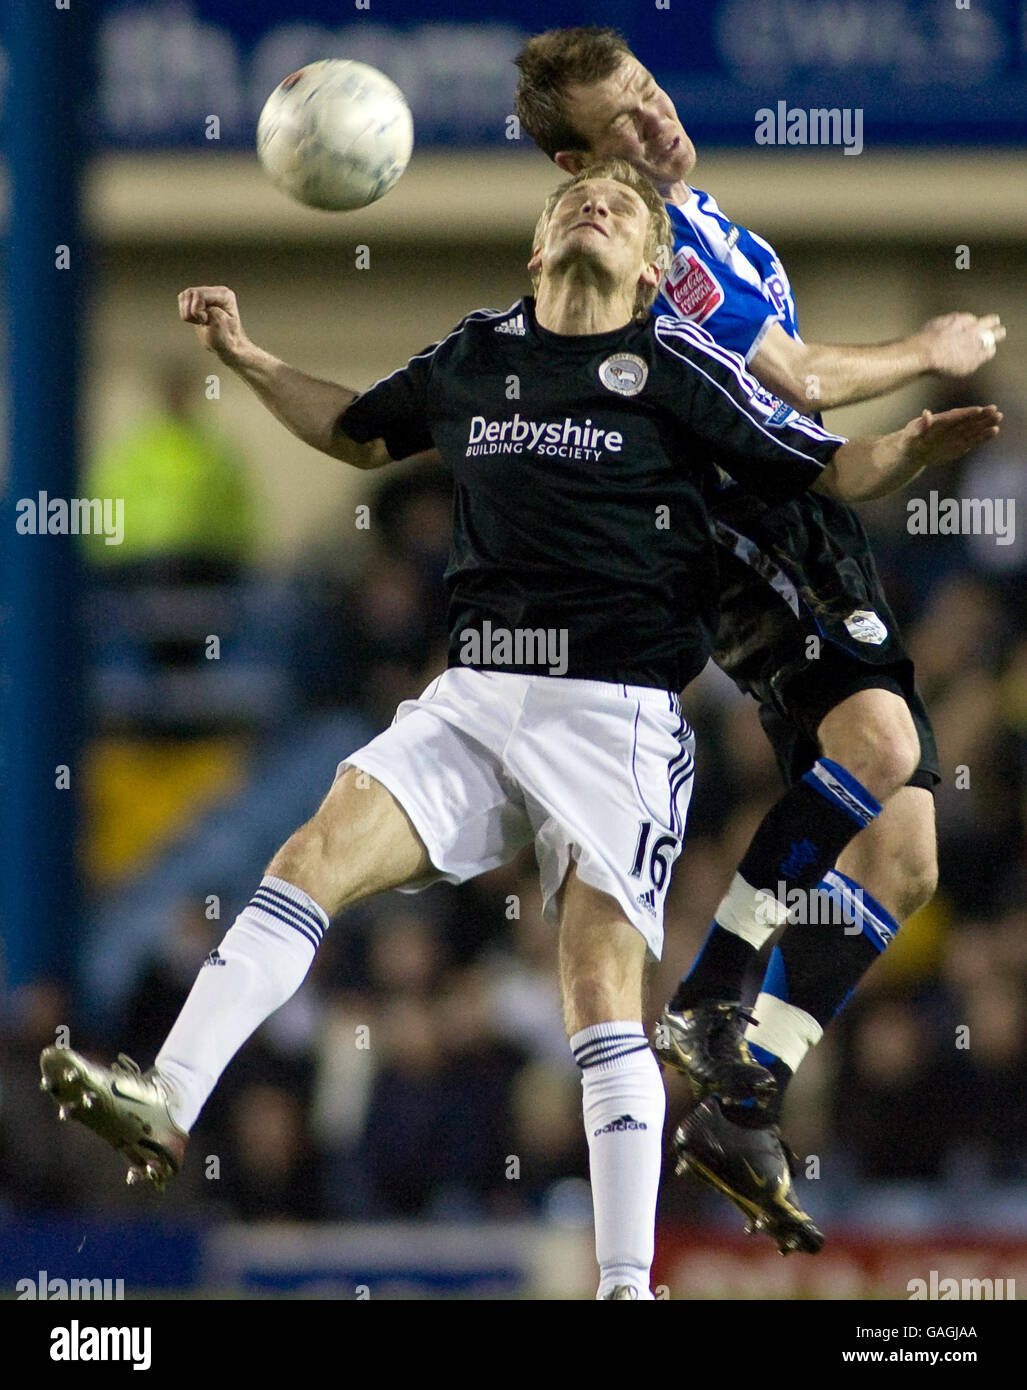 Soccer - FA Cup Third Round Replay - Sheffield Wednesday v Derby County - Hillsborough - Stock Image